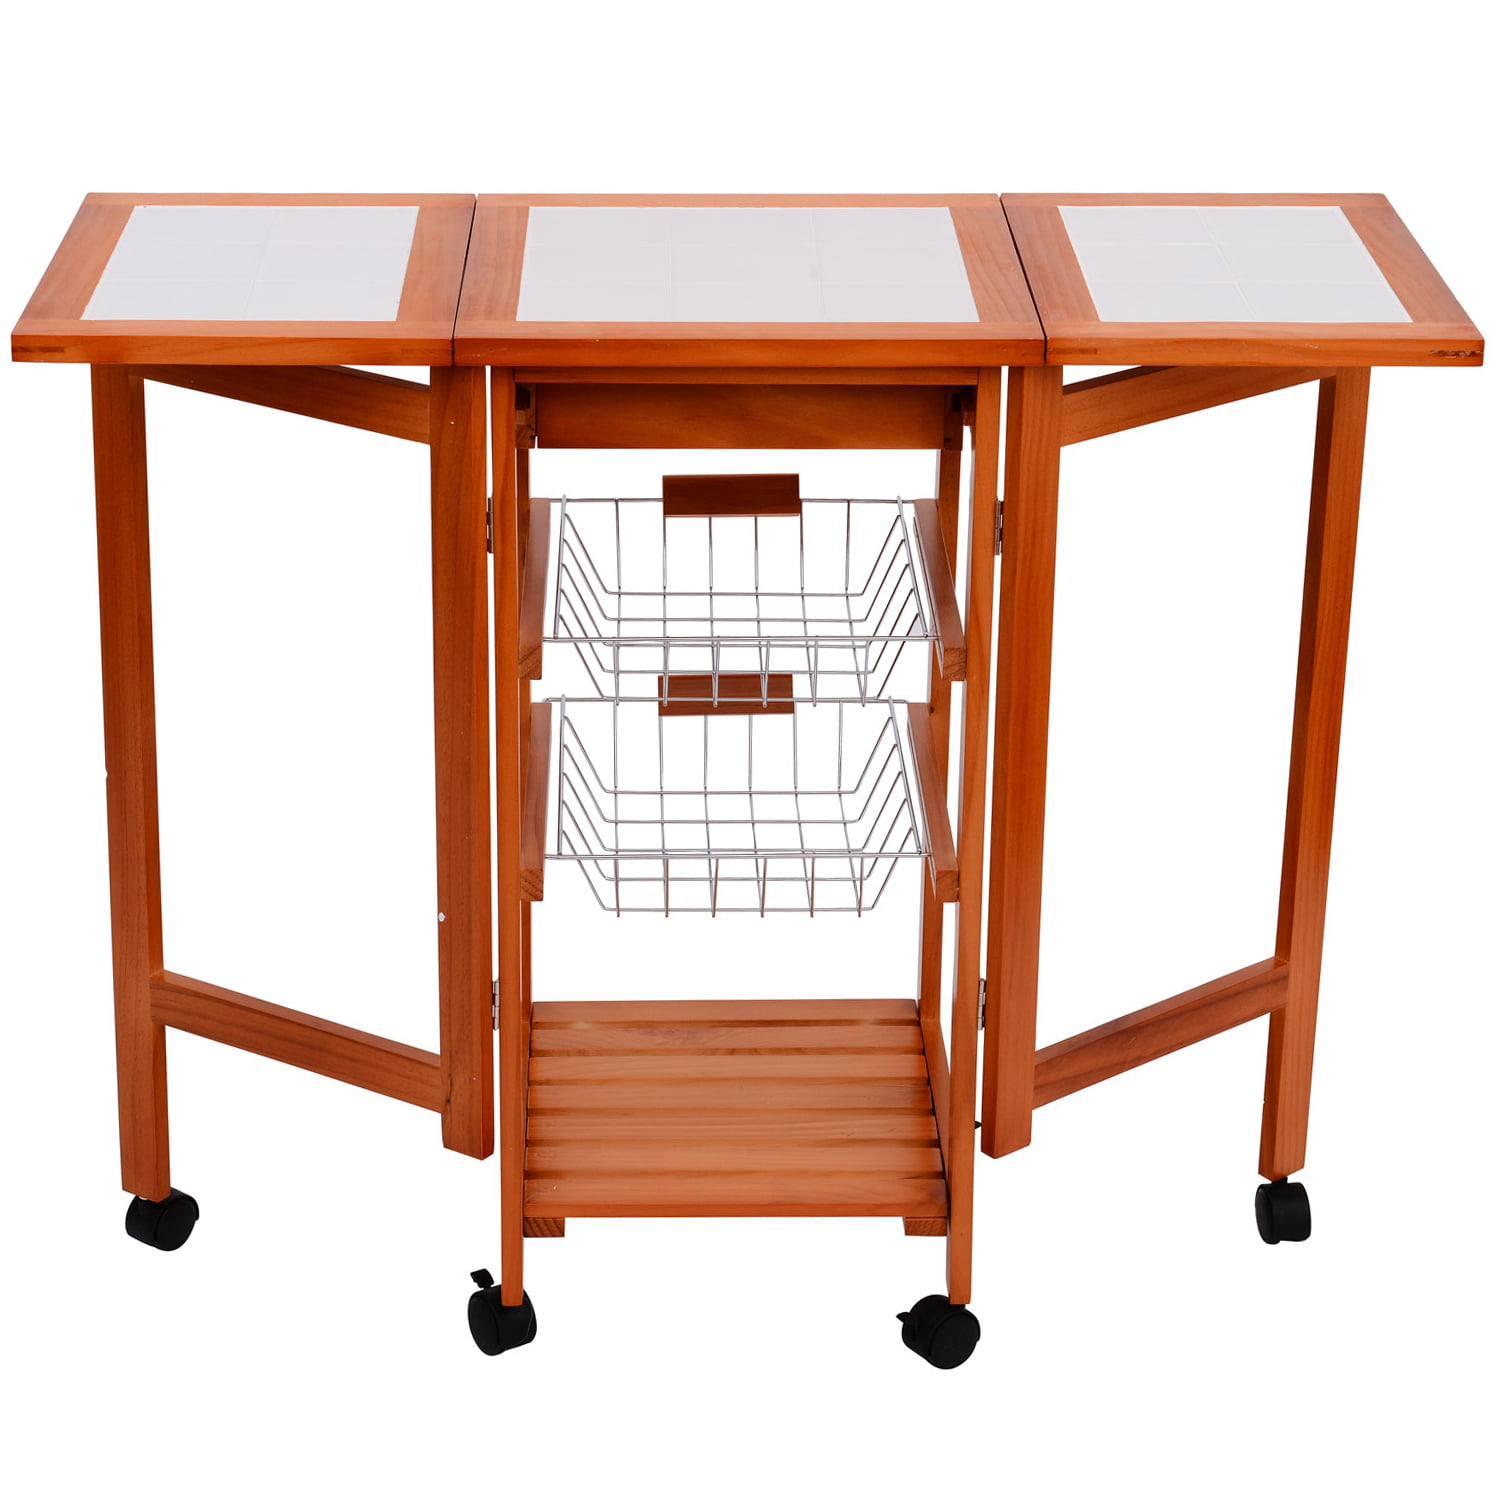 High Quality Kitchen Islands U0026 Carts. Under $75 Nice Design